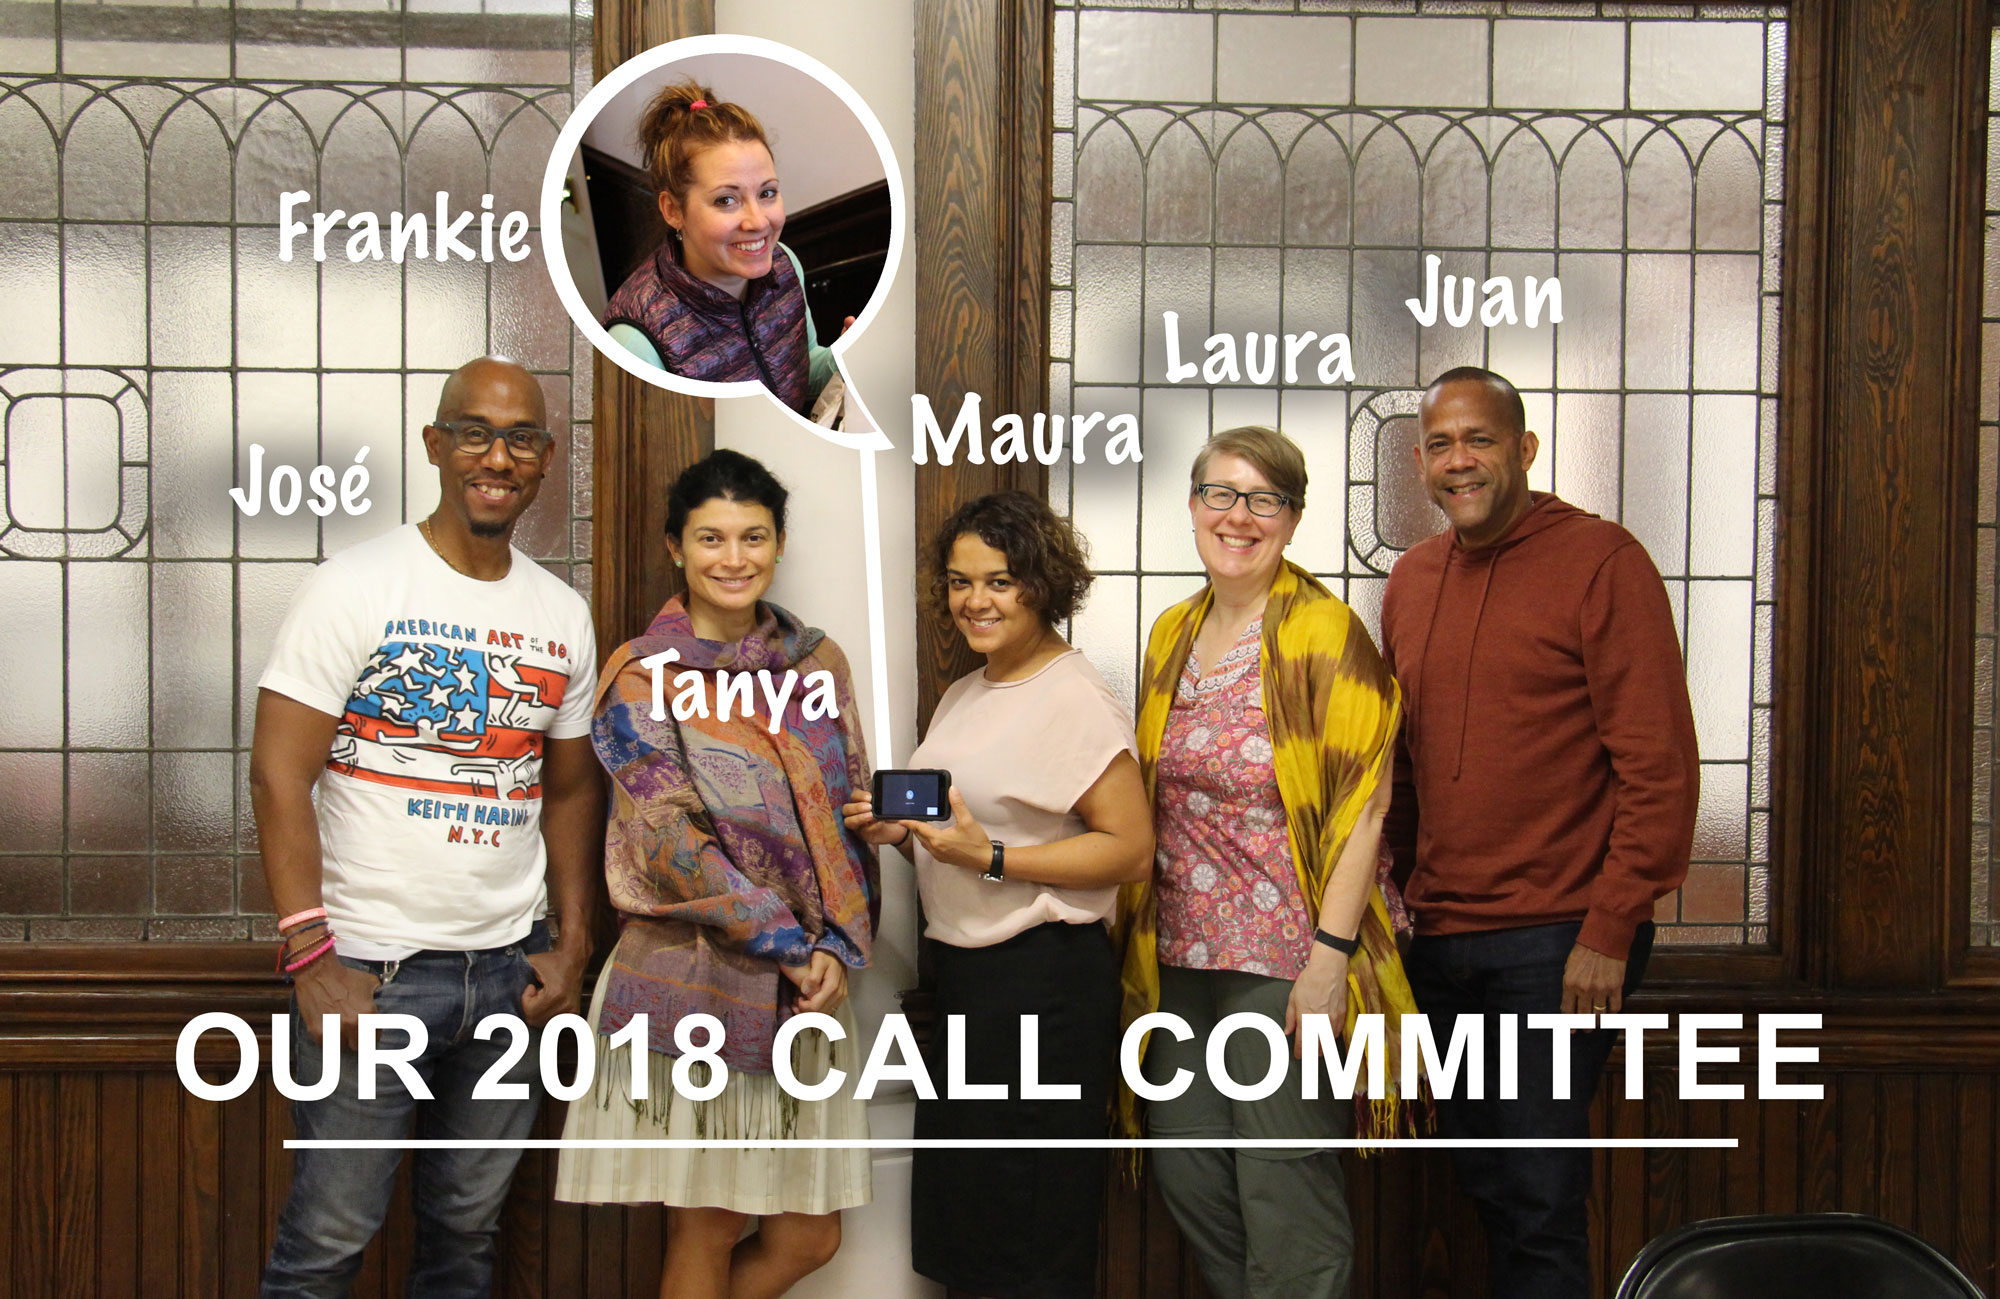 Call-Committee-2018-group-photo_comp_websize2000.jpg